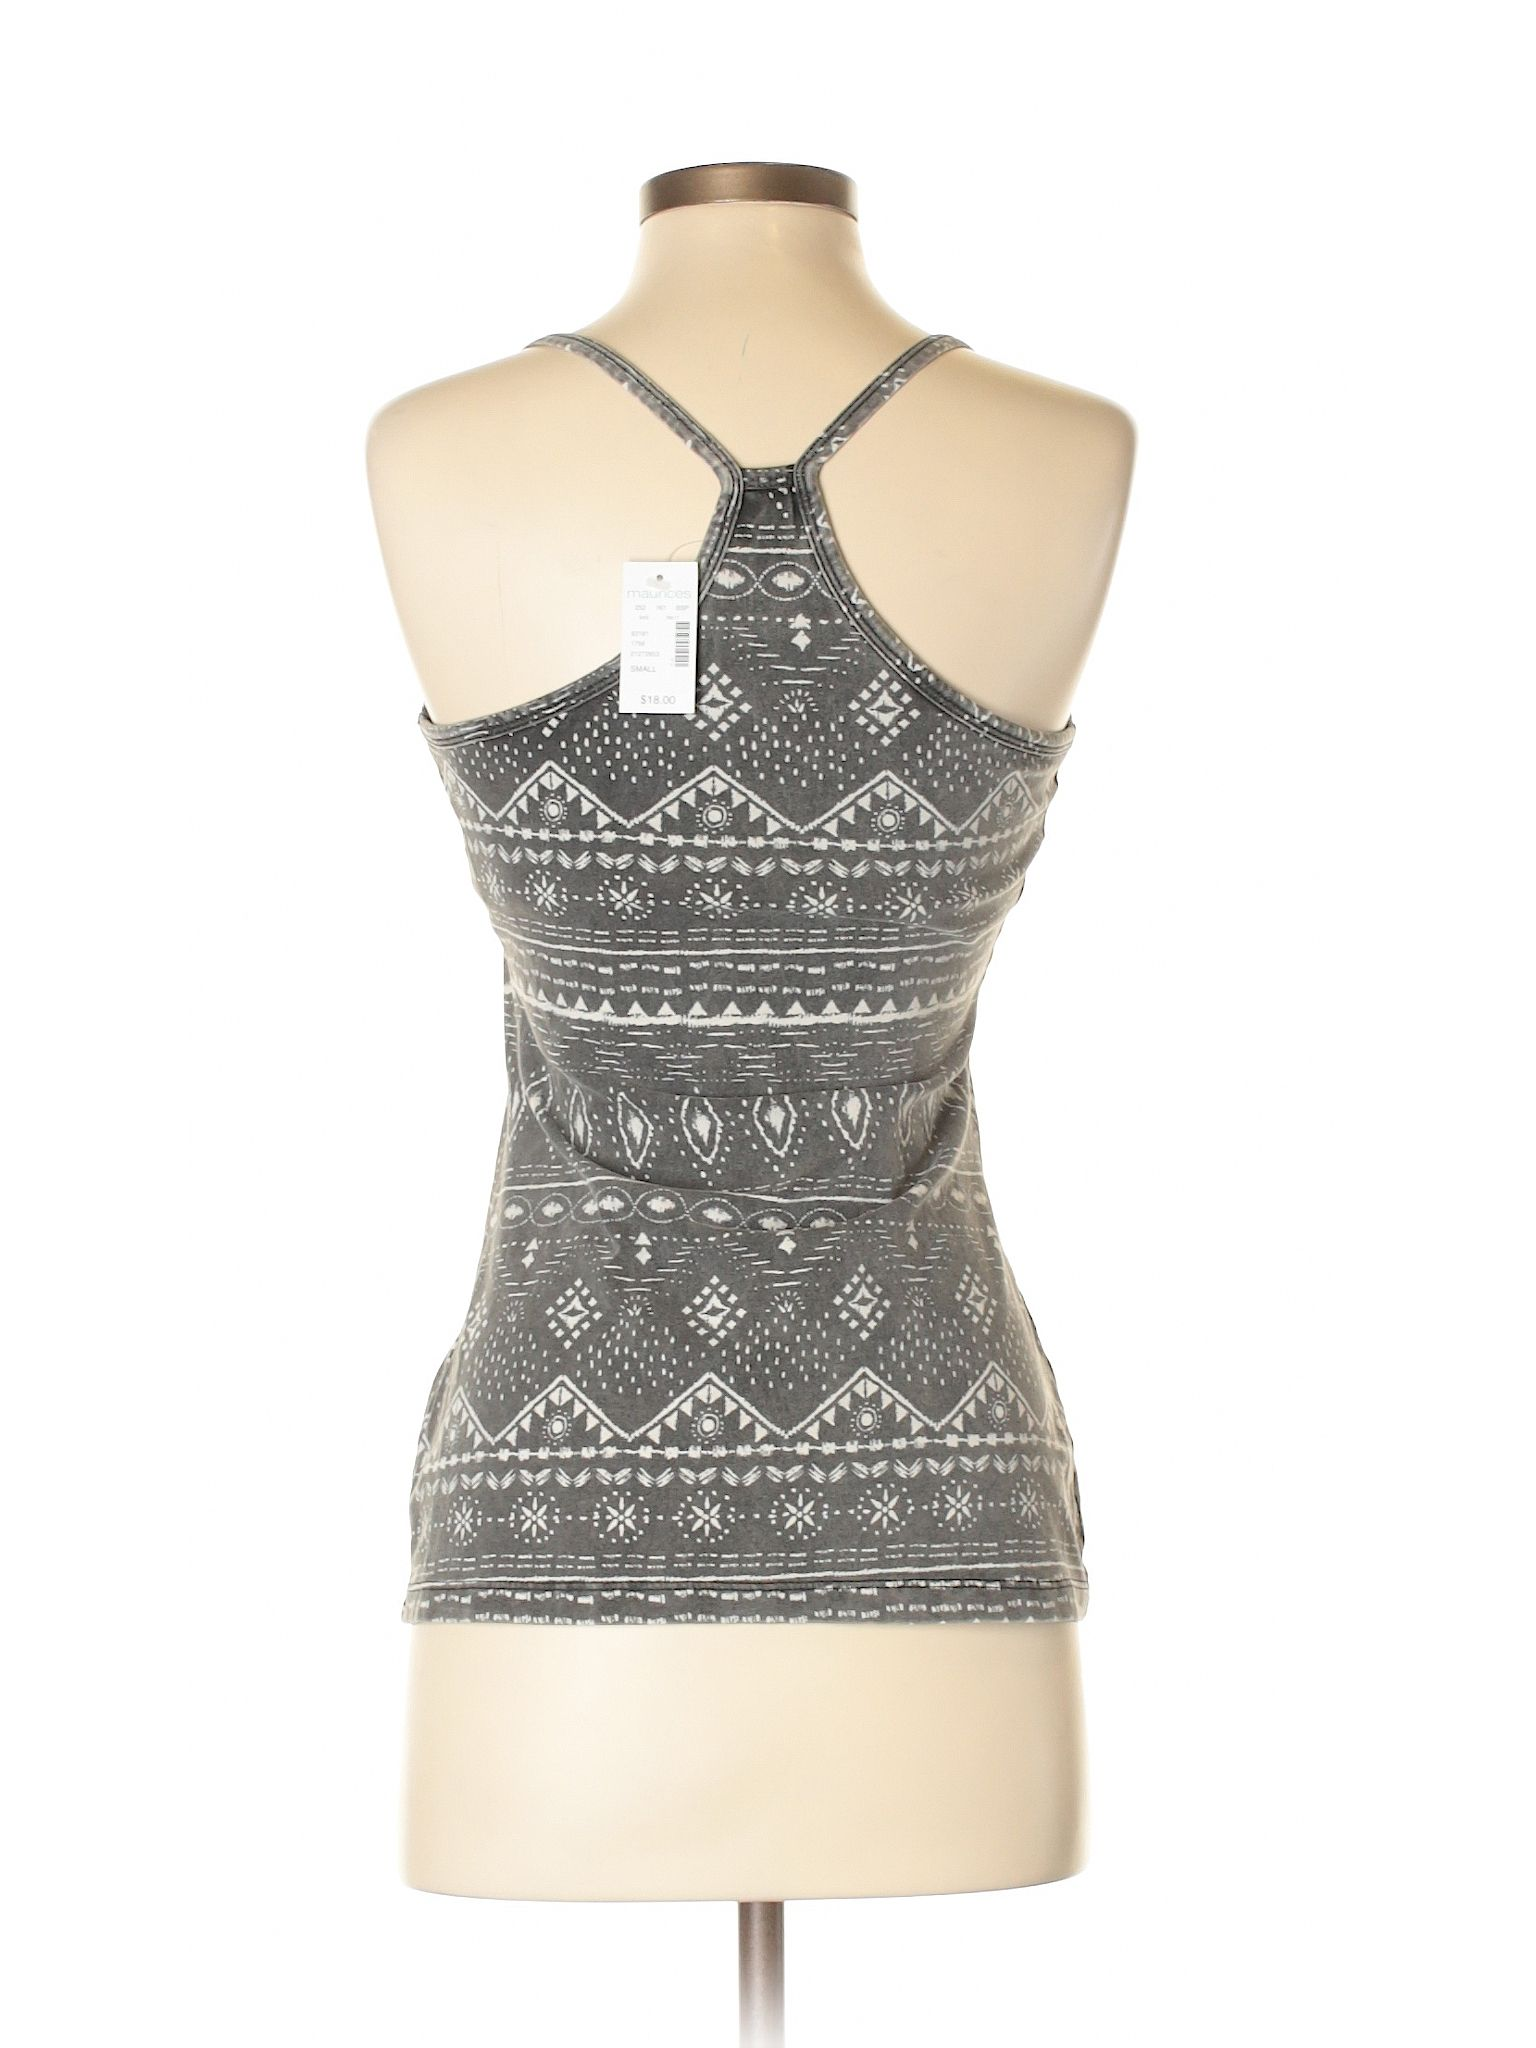 416af21470383c Maurices Tank Top  Size 4.00 Gray Women s Tops - New With Tags -  6.99